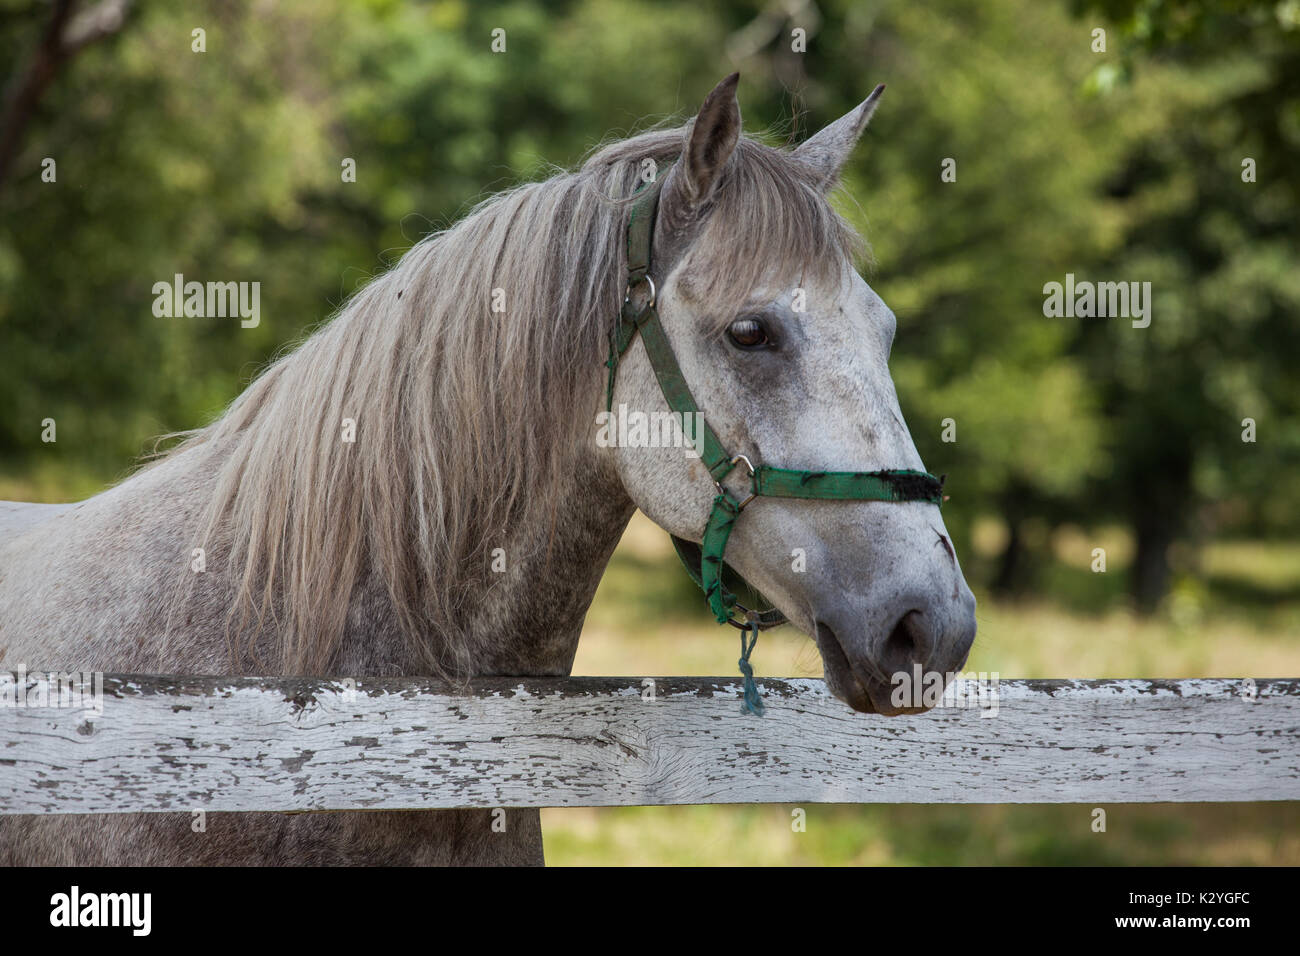 Lipizzaner horses originally coming from the small village of Lipica in Slovenia. Stallions and Mayors are still breed for the centuries. - Stock Image